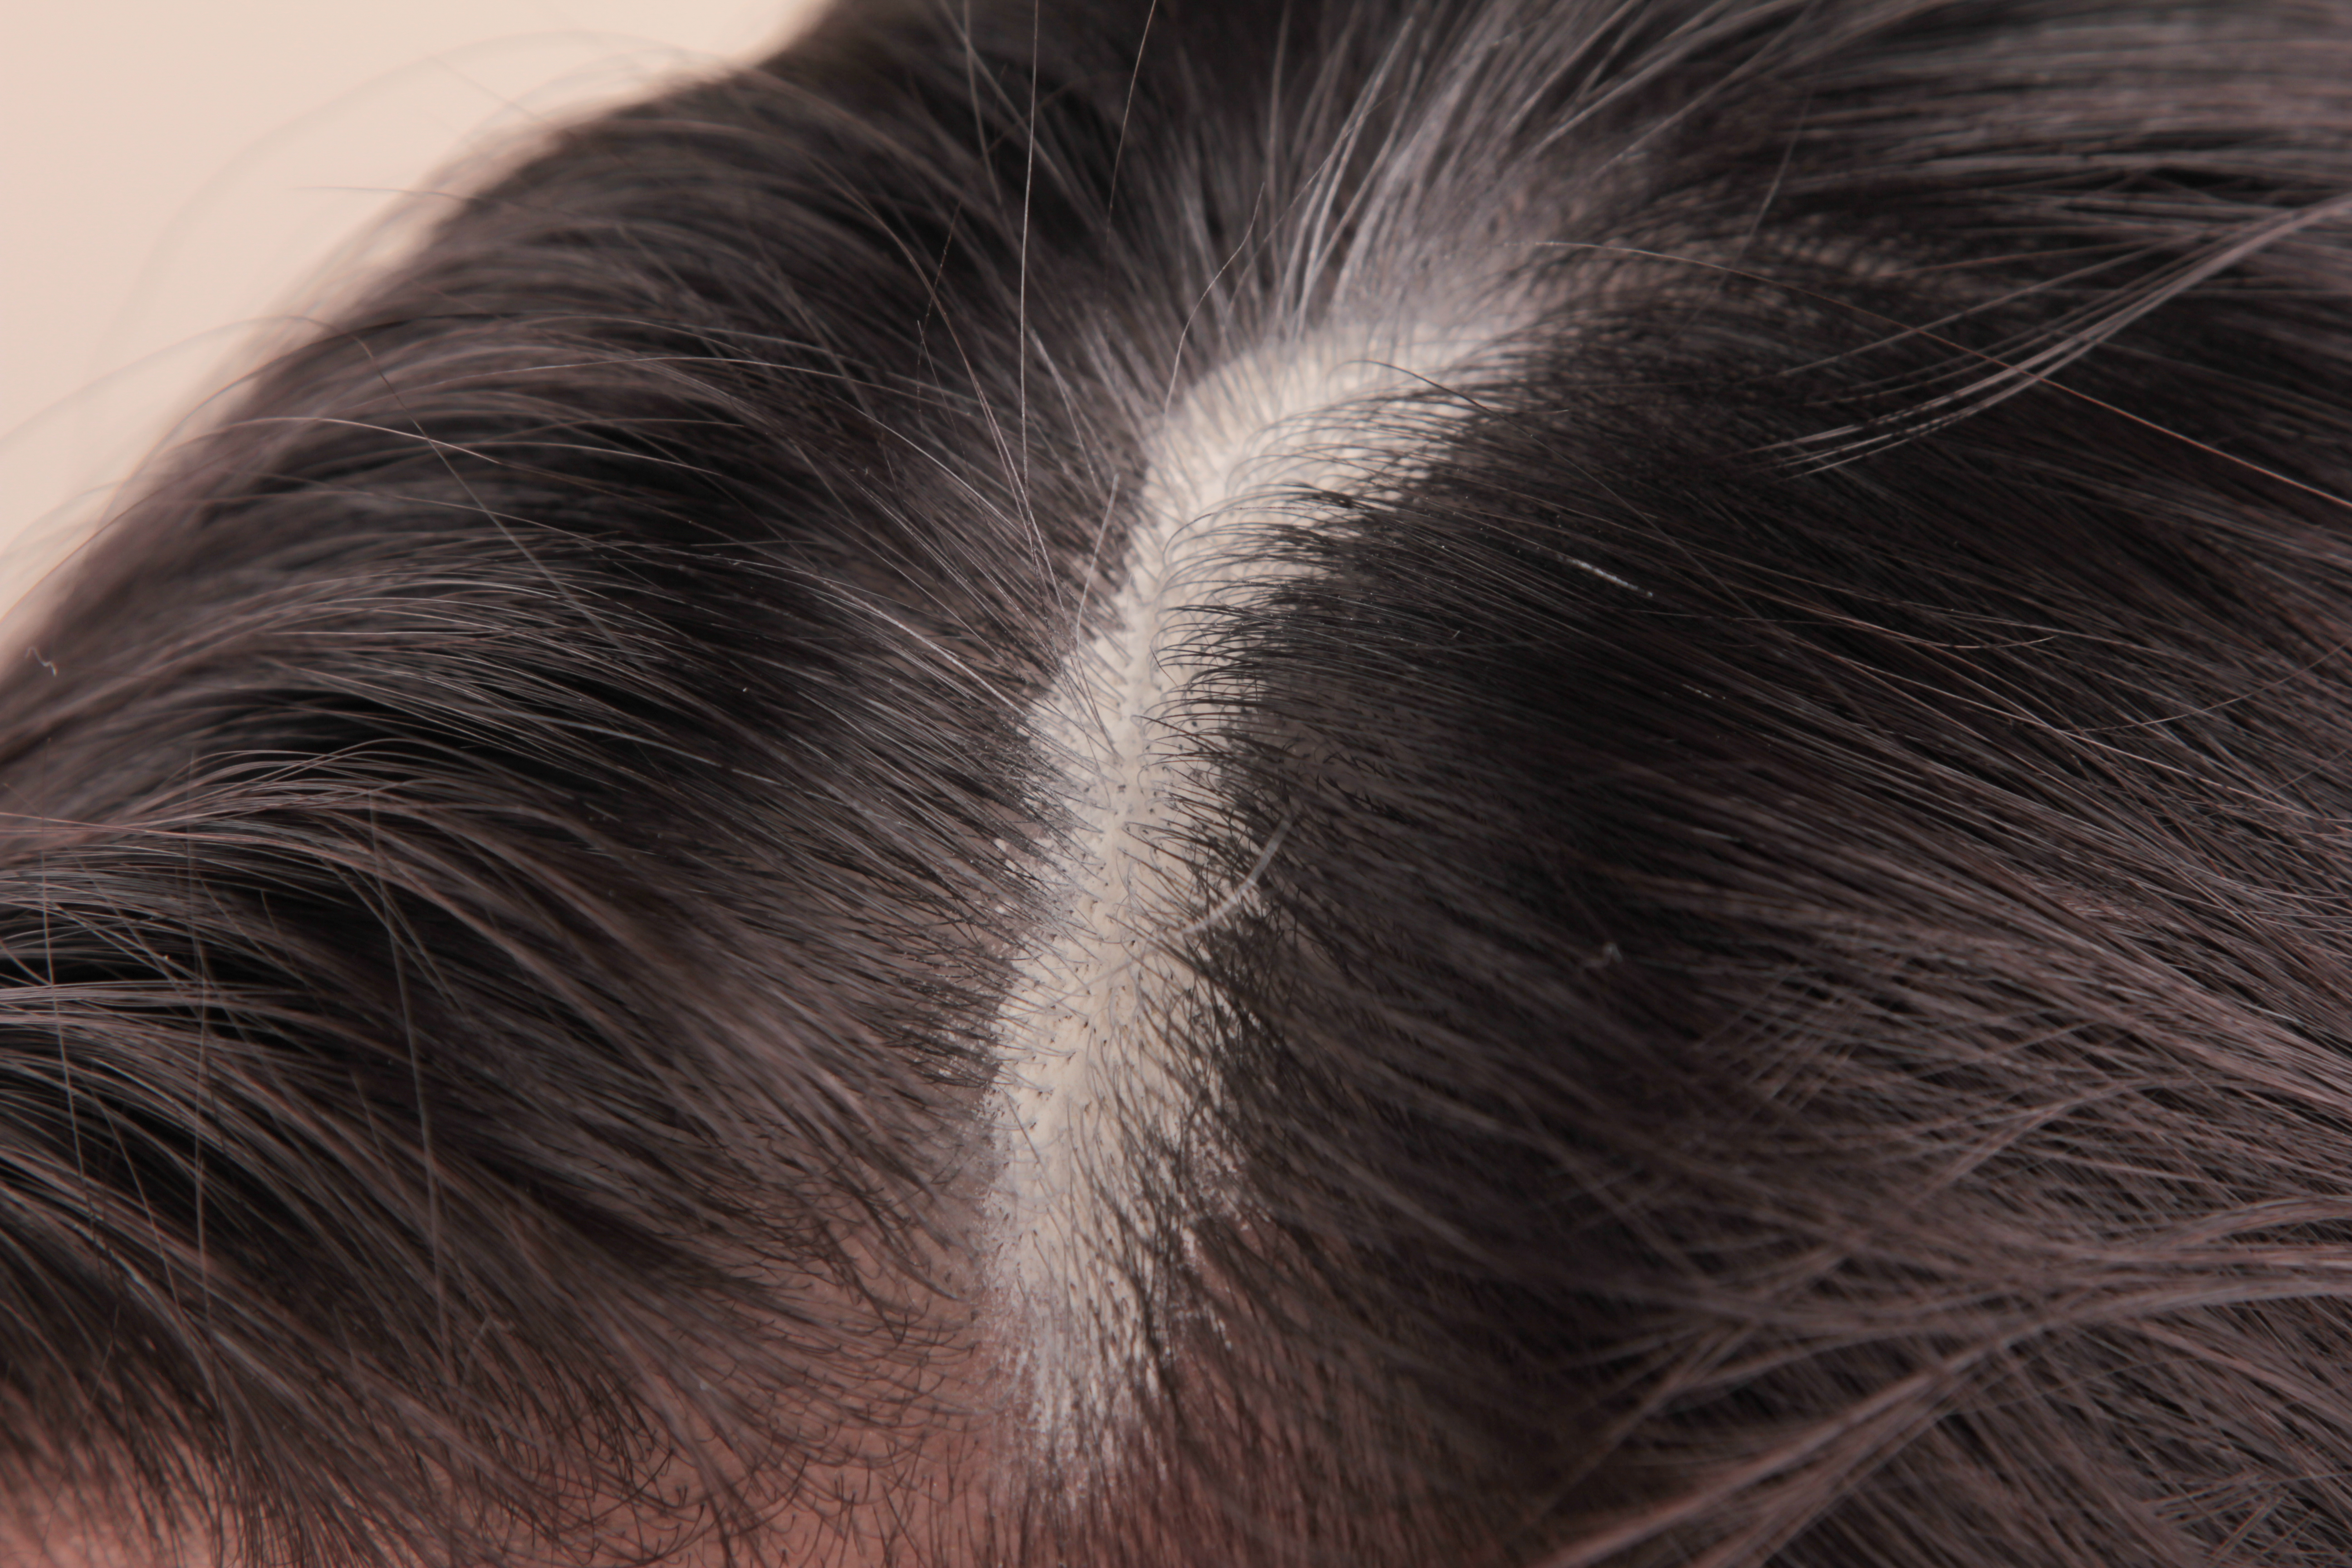 How to Clean Sebum From the Scalp | LIVESTRONG.COM